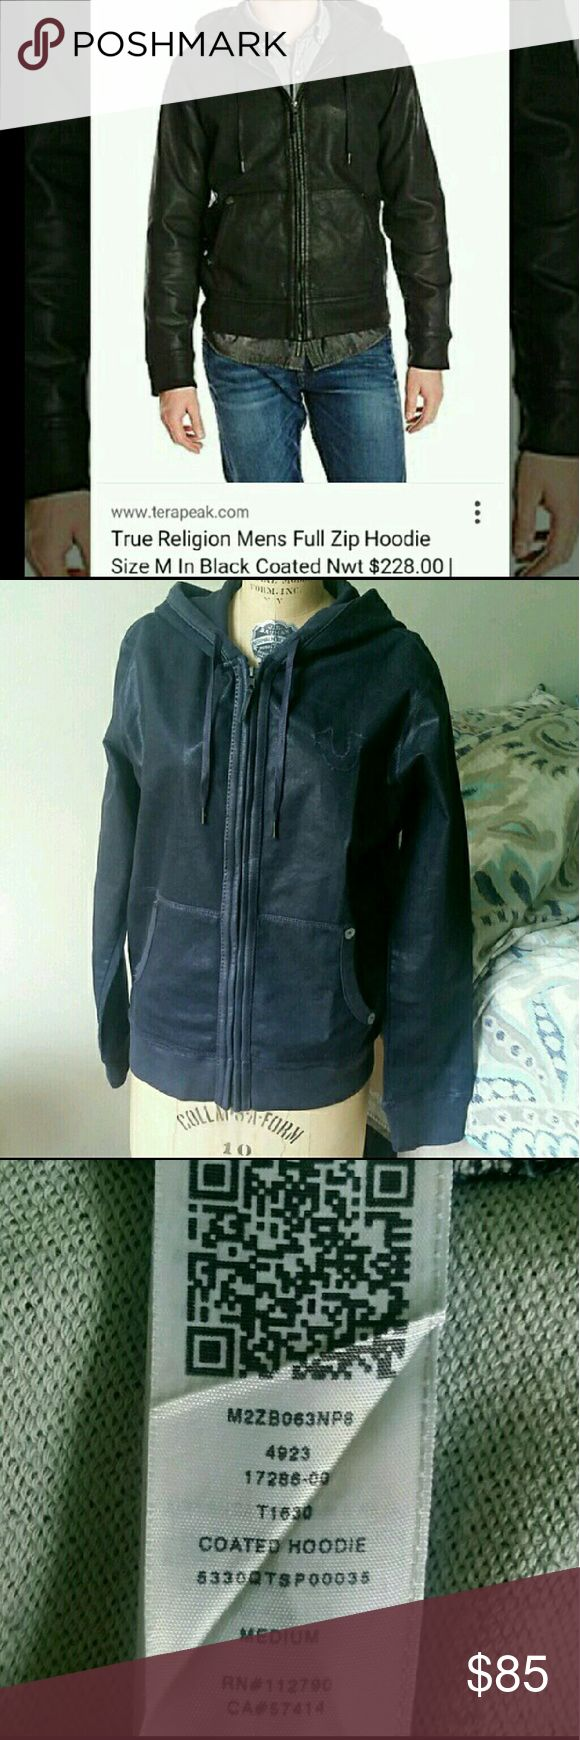 True Religion full zip Coated Hoodie True Religion full zip Coated Hoodie NWOT  SIZE MEDIUM  No rips, tears, scuffs, holes. No sign of wear all tags are clean.  Comfortable and semi waterproof due to the coating.  This is a quality piece, dark blue, so you can wear with anything.  NO LOW BALL OFFERS!!! **pictures will be taken before shipping to insure quality for the customer and myself ** True Religion Jackets & Coats